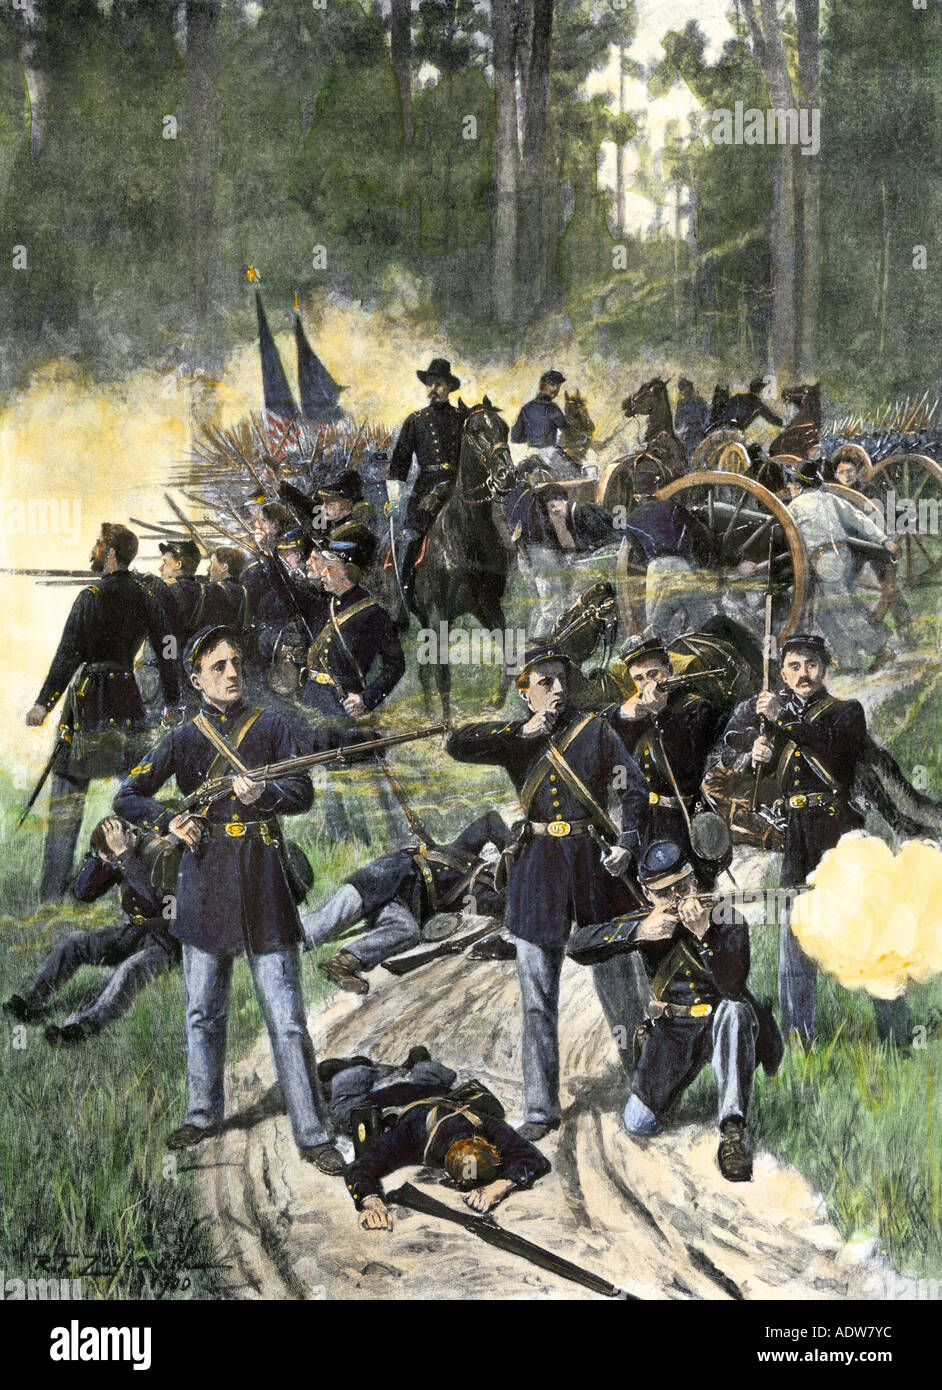 Union troops engaged at Gaines Mill in the Battle of Cold Harbor, Virginia, American Civil War, June 27, 1862. Hand-colored halftone of an ilustration - Stock Image